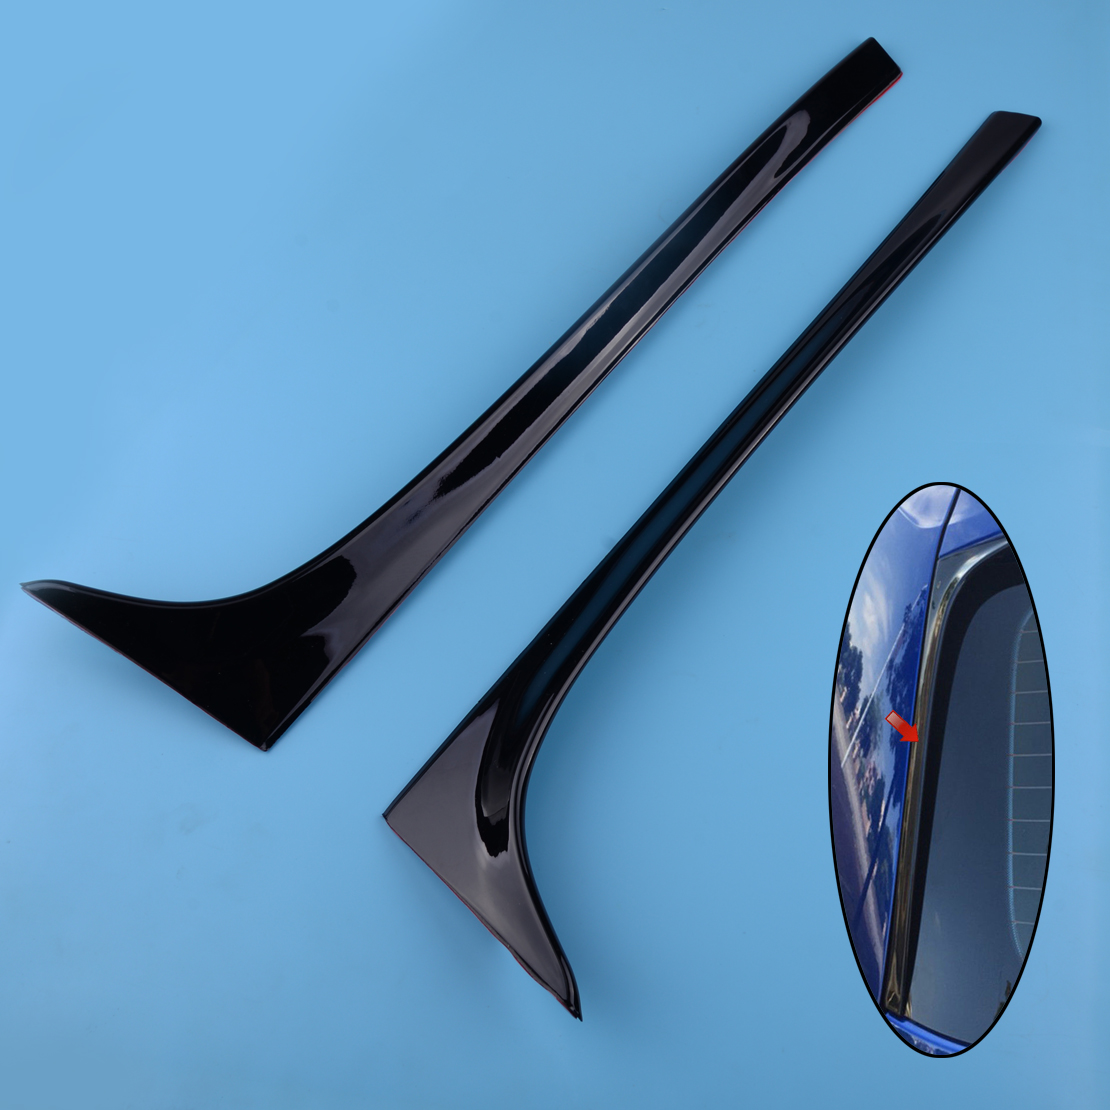 beler 2Pcs Car Black Plastic Rear Window Side Spoiler Wing Lip Cover Trim Sticker Fit For VW <font><b>GOLF</b></font> MK7 MK7.5 <font><b>R</b></font> GTE GTD image